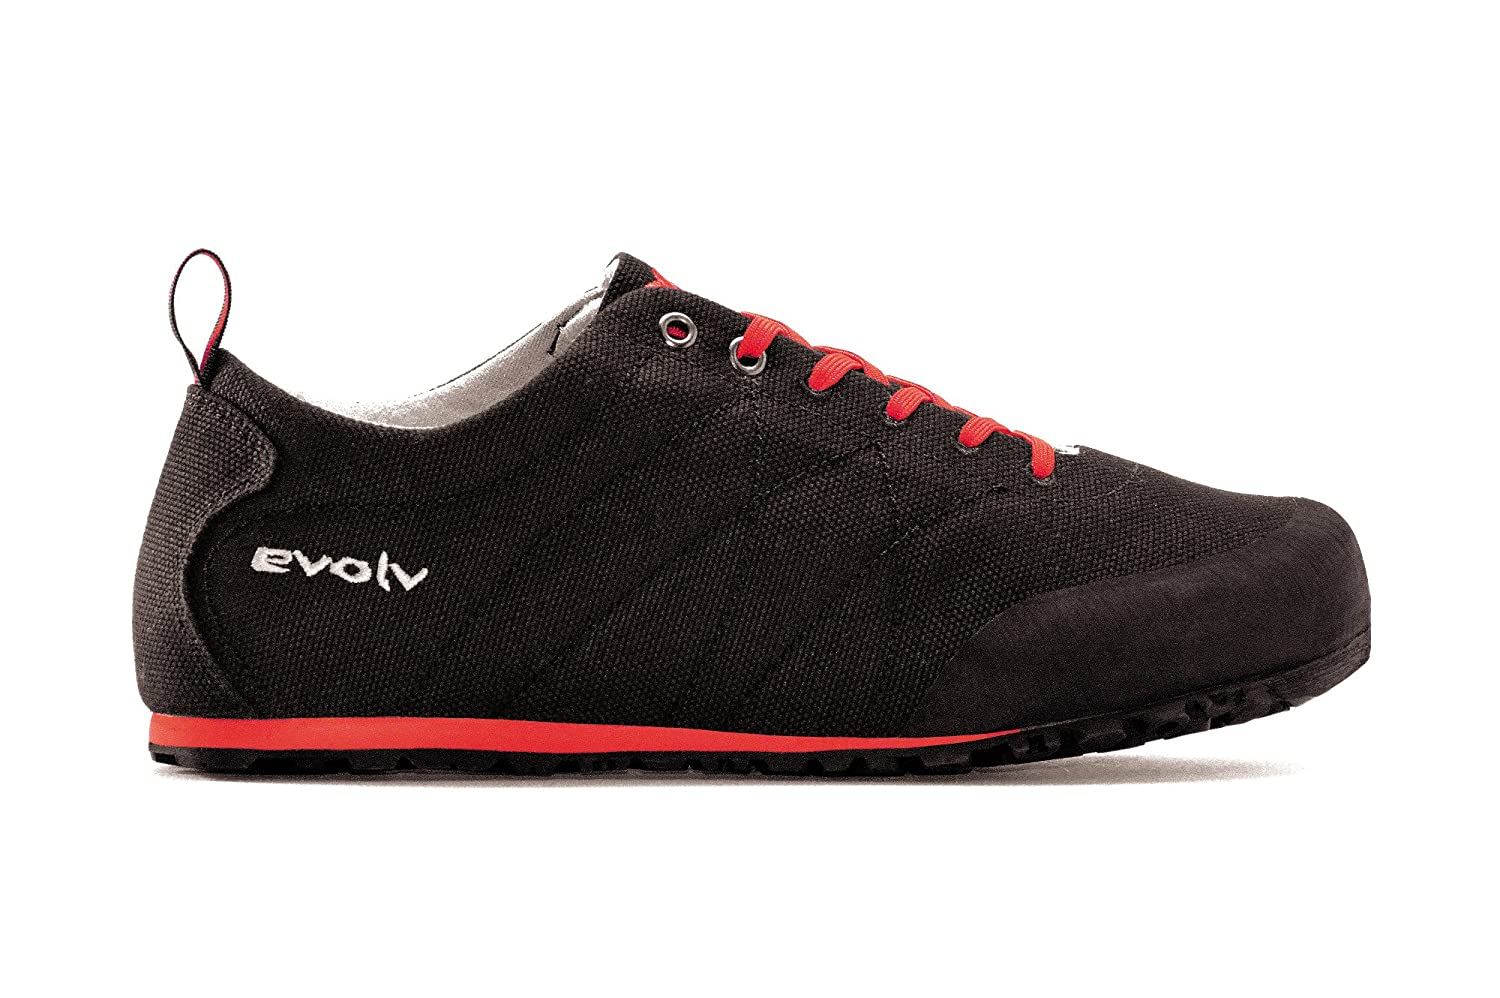 Evolv Cruzer Psyche Approach Shoe